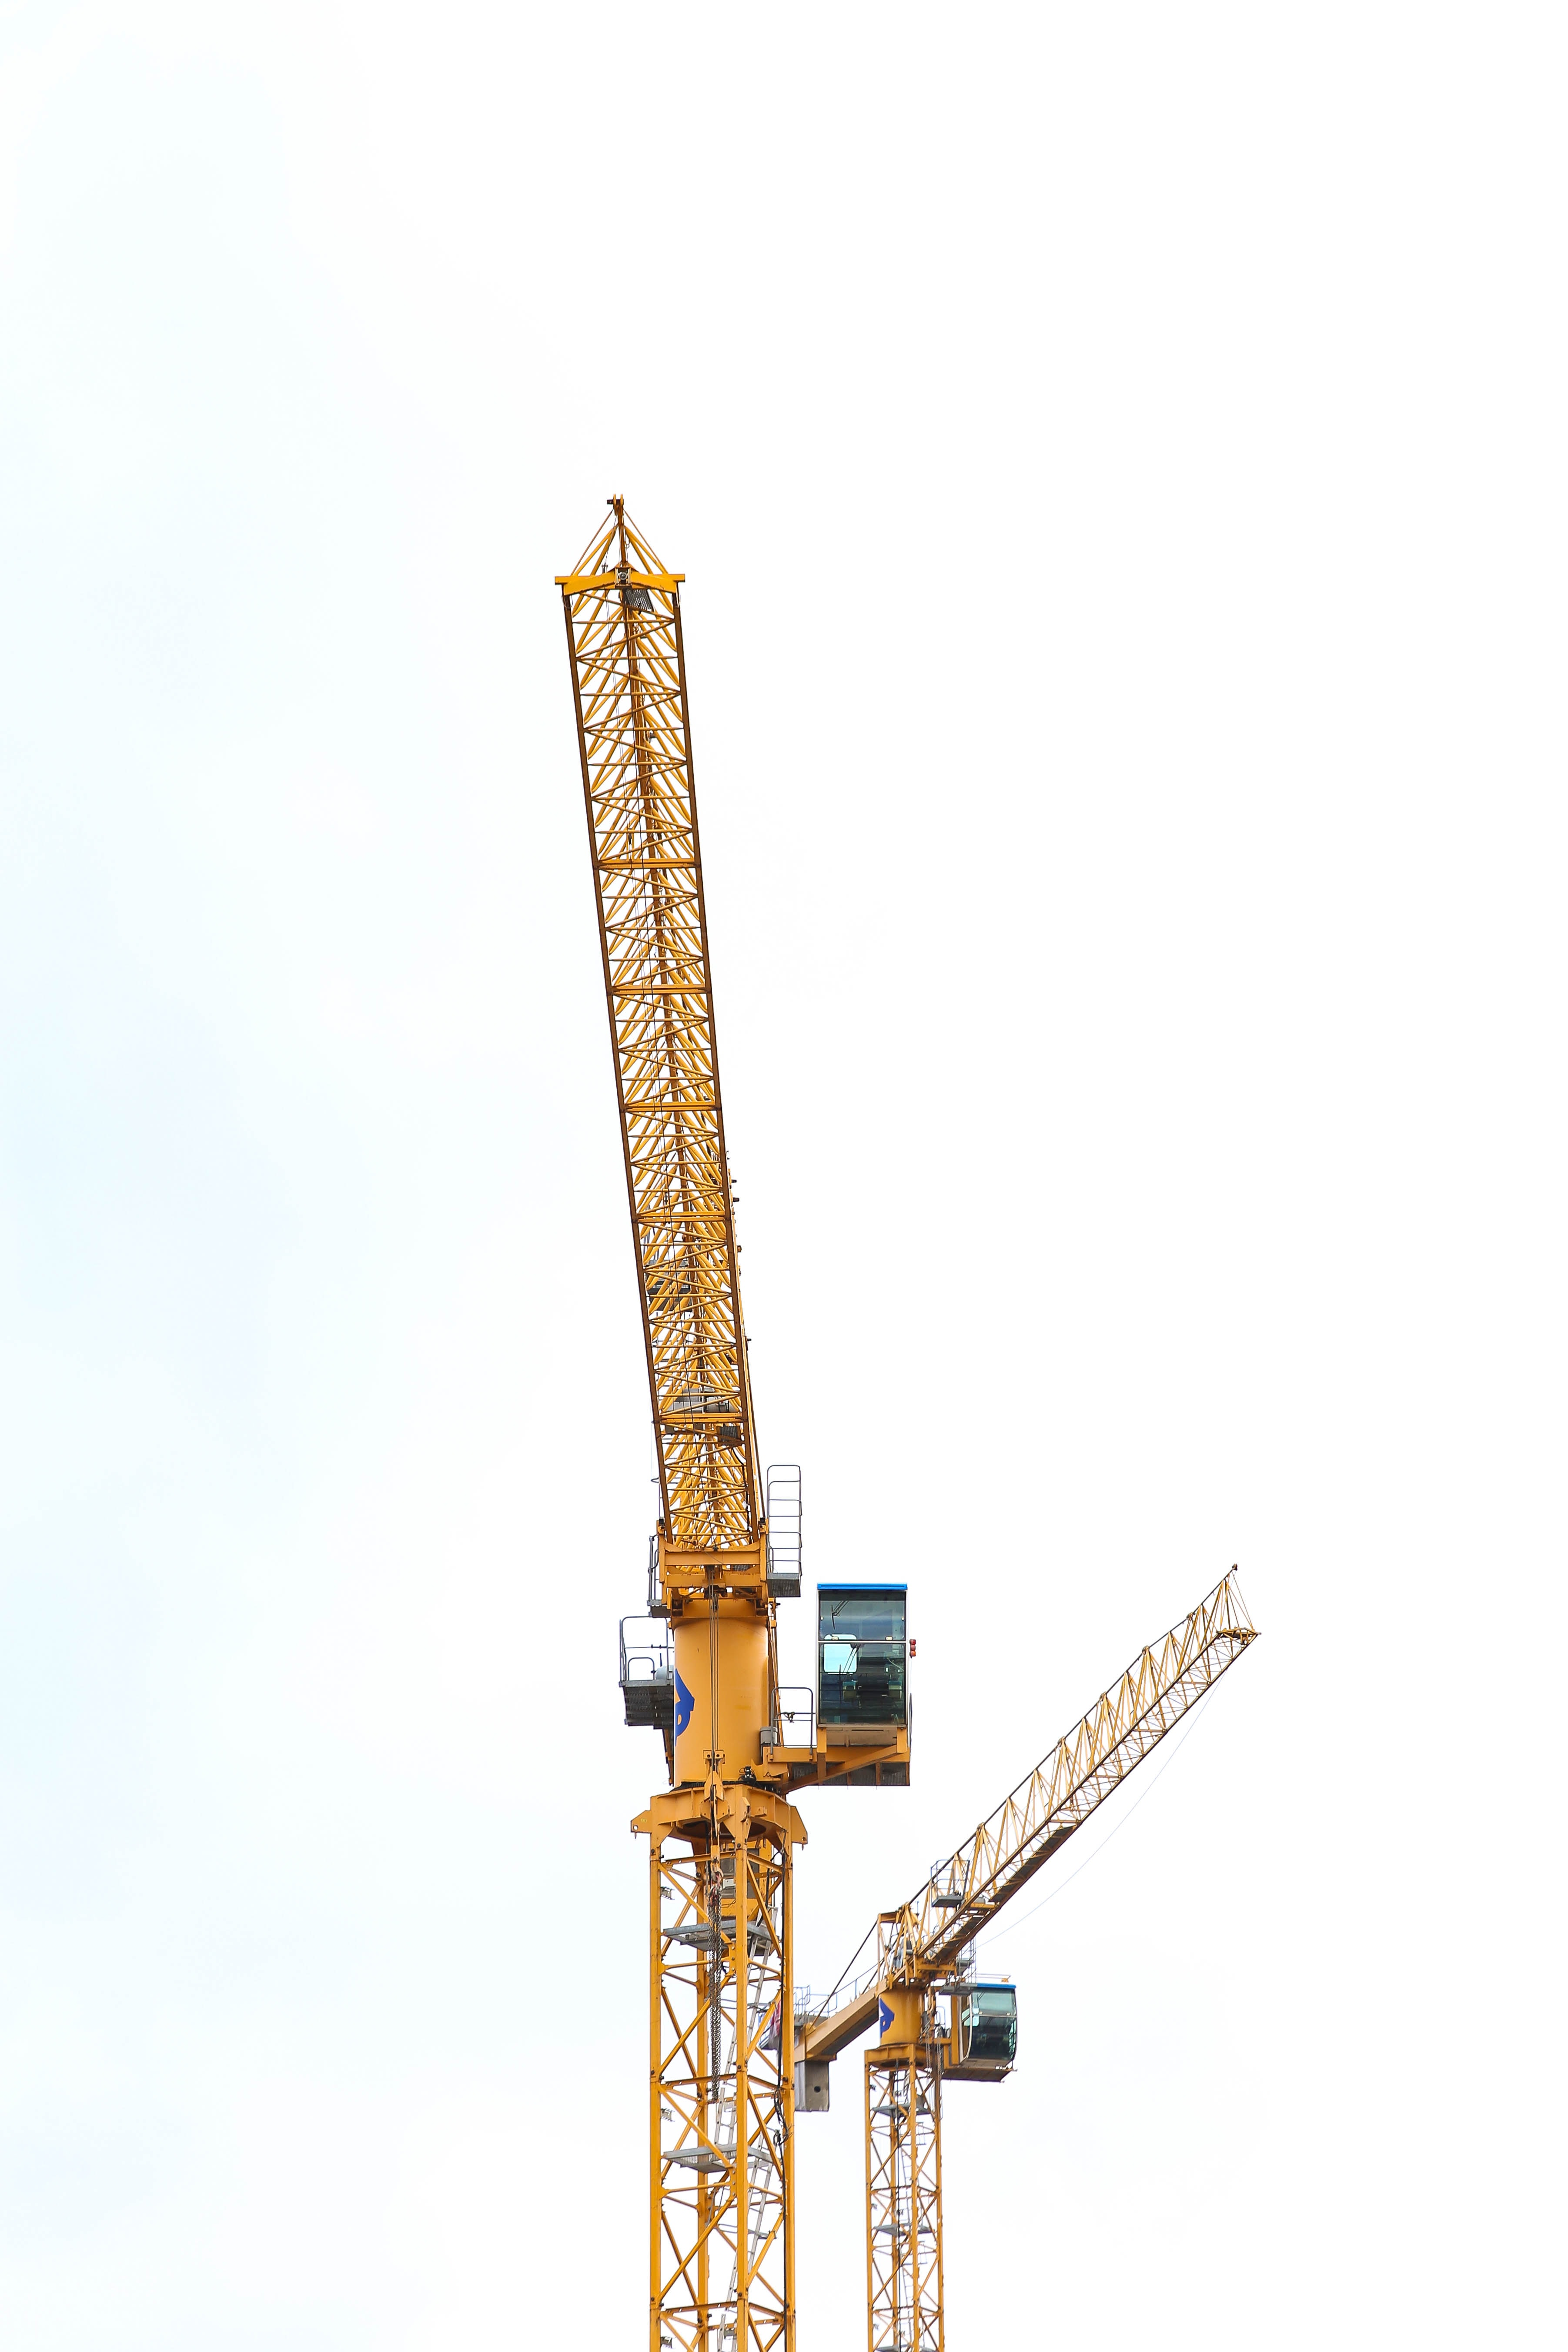 Crane Pictures 500+ crane pictures | download free images on unsplash